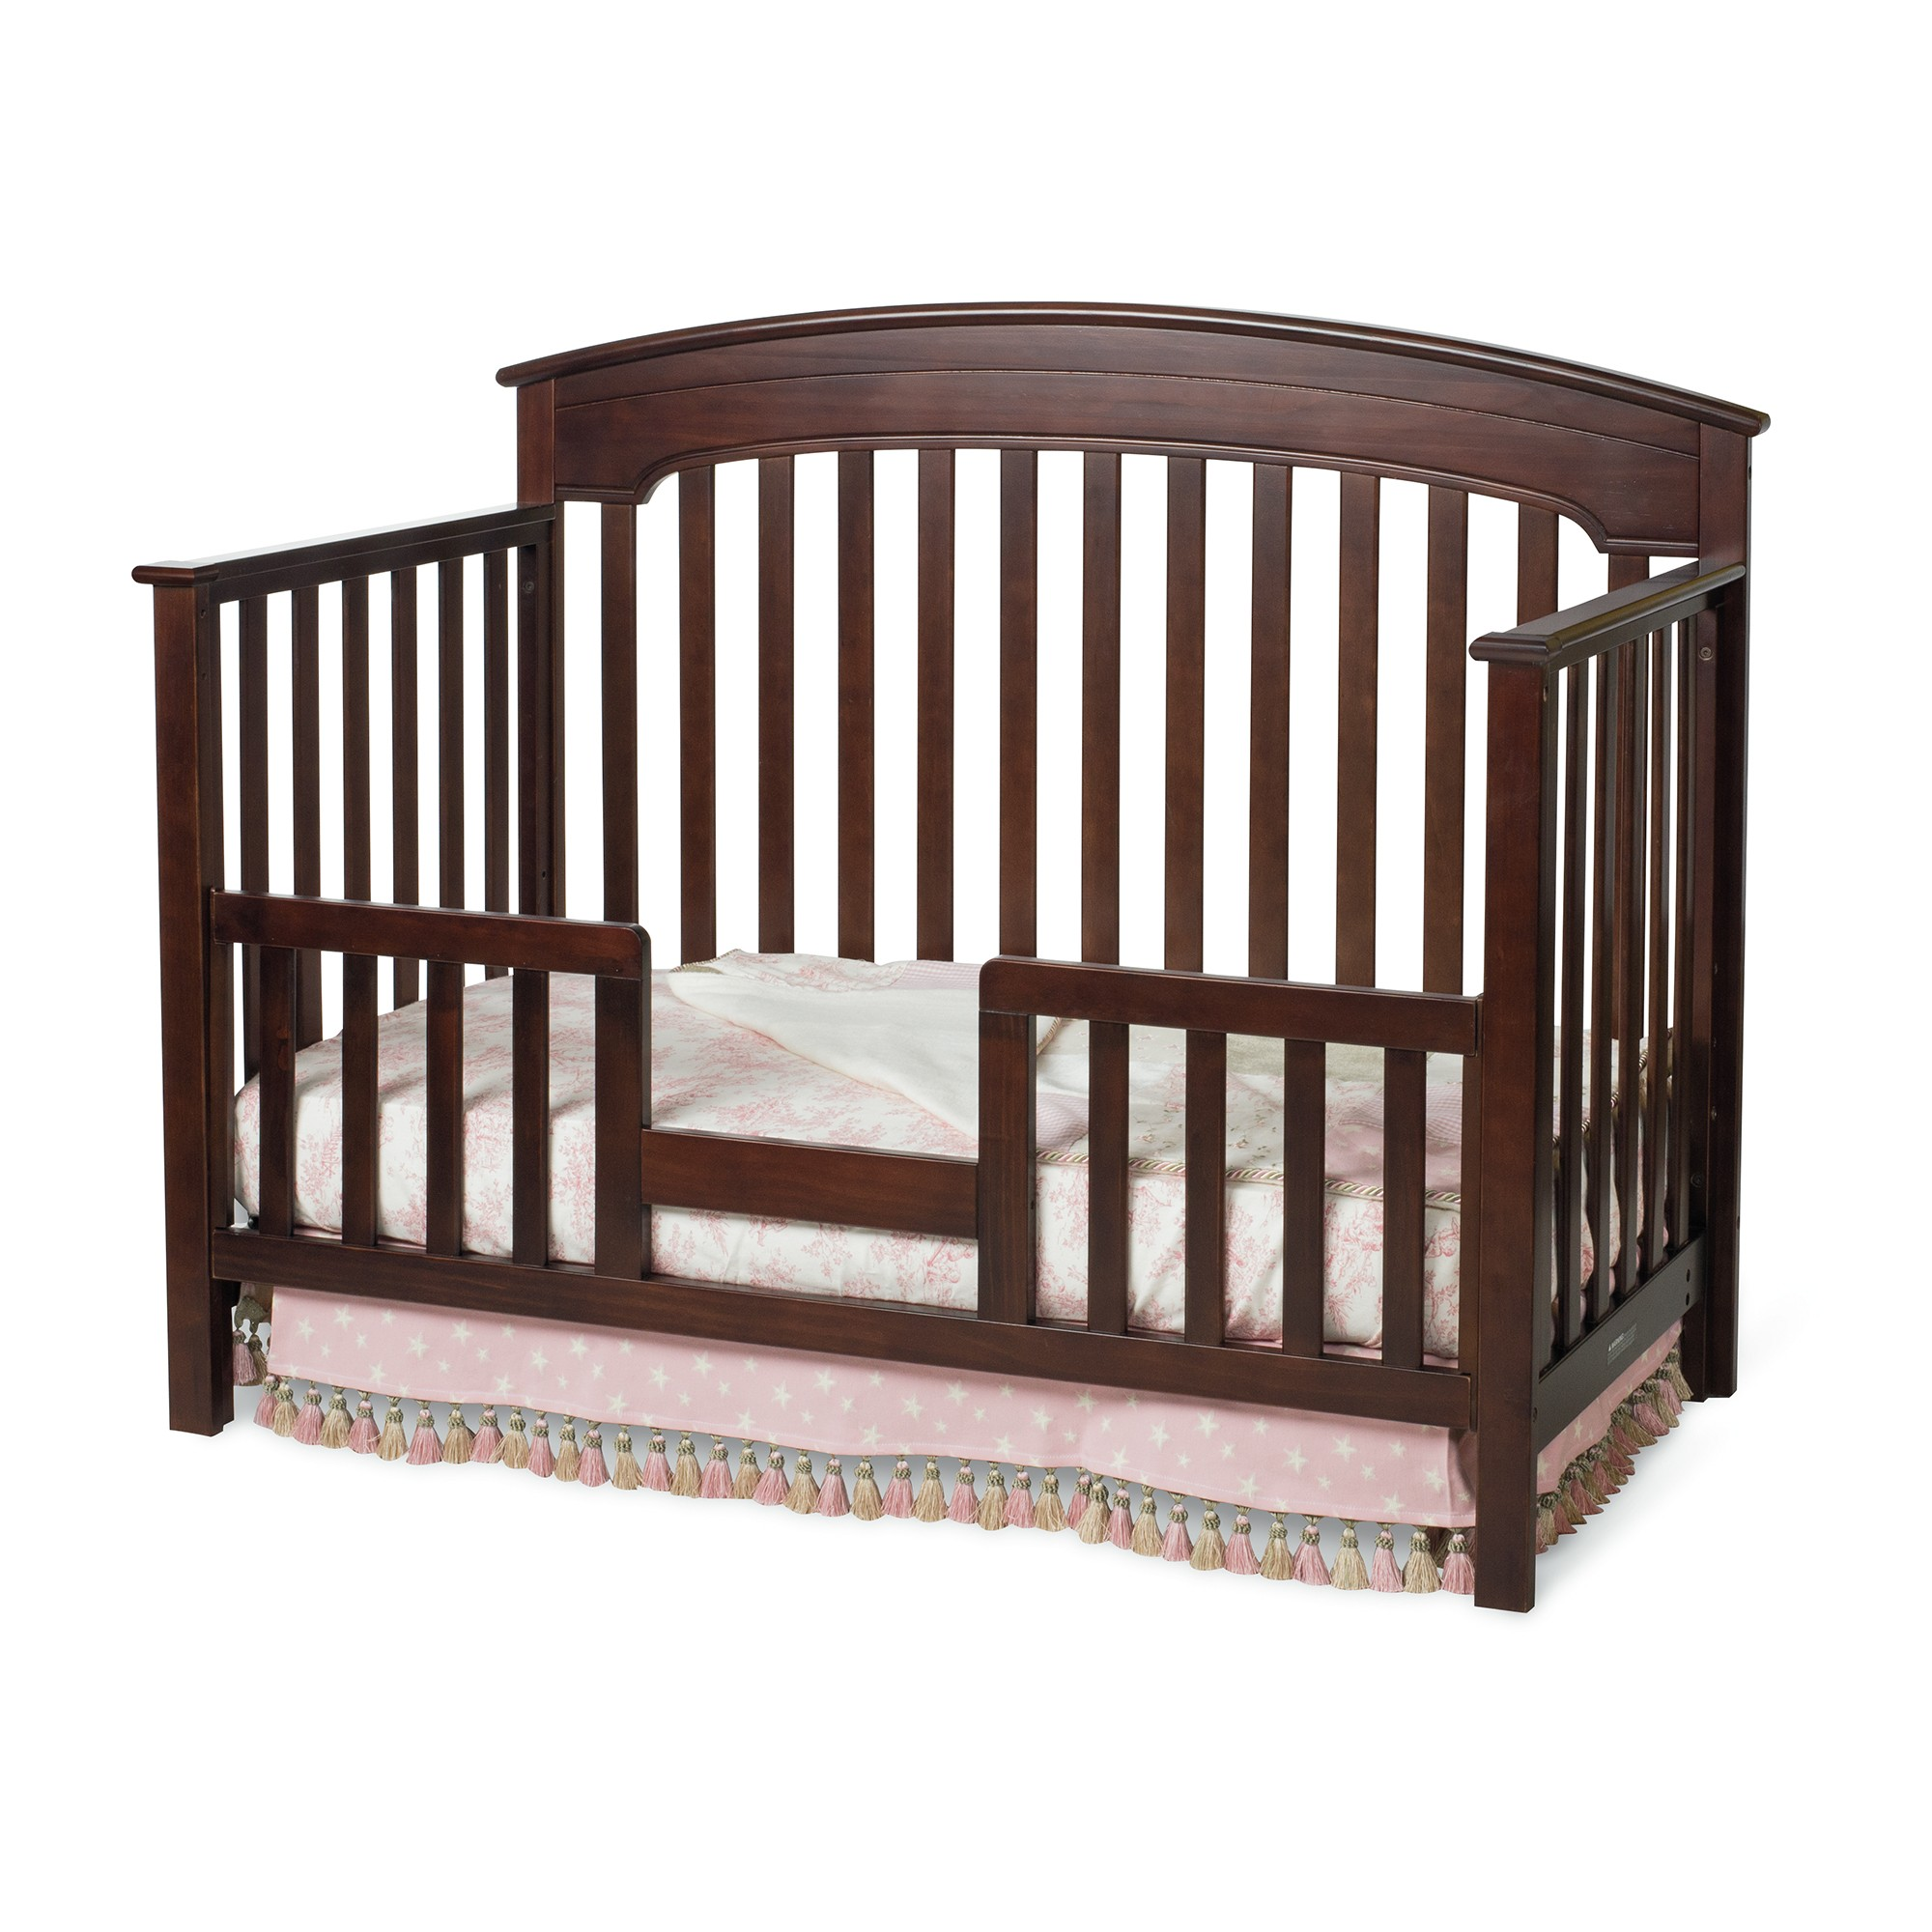 Wadsworth Convertible Child Craft Crib | Child Craft